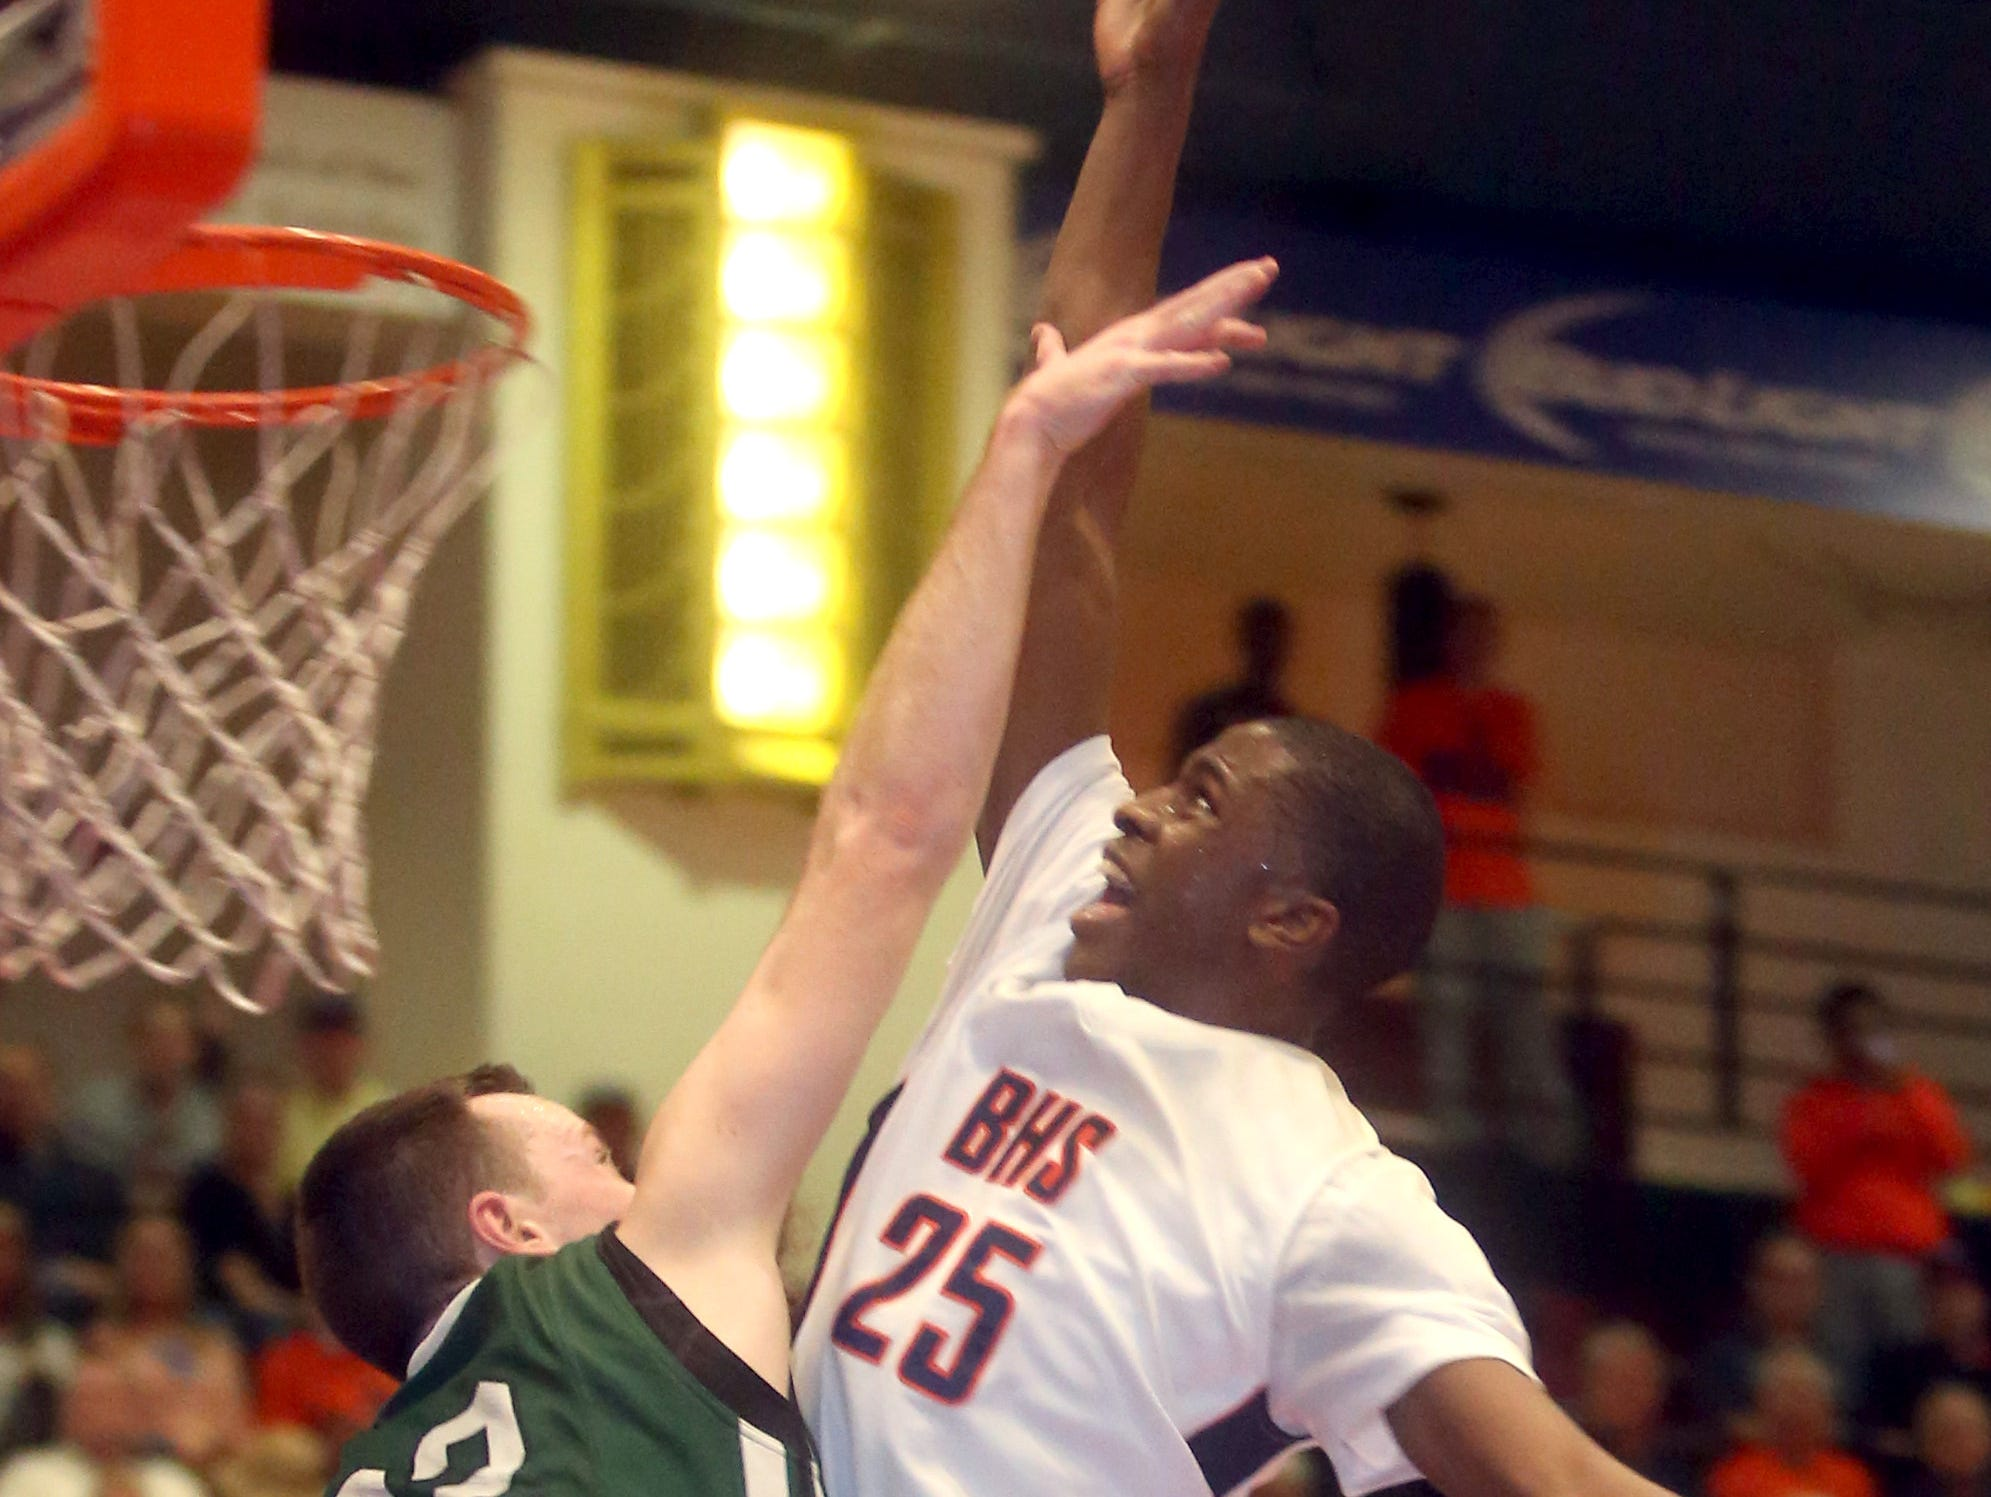 Briarcliff's Josiah Cobbs shoots over Woodlands' Kyle Smith during a Section 1 Class B semifinal basketball game at the Westchester County Center in White Plains Feb. 24, 2016. Briarcliff defeated Woodlands 65-56 to advance to the Class B final.